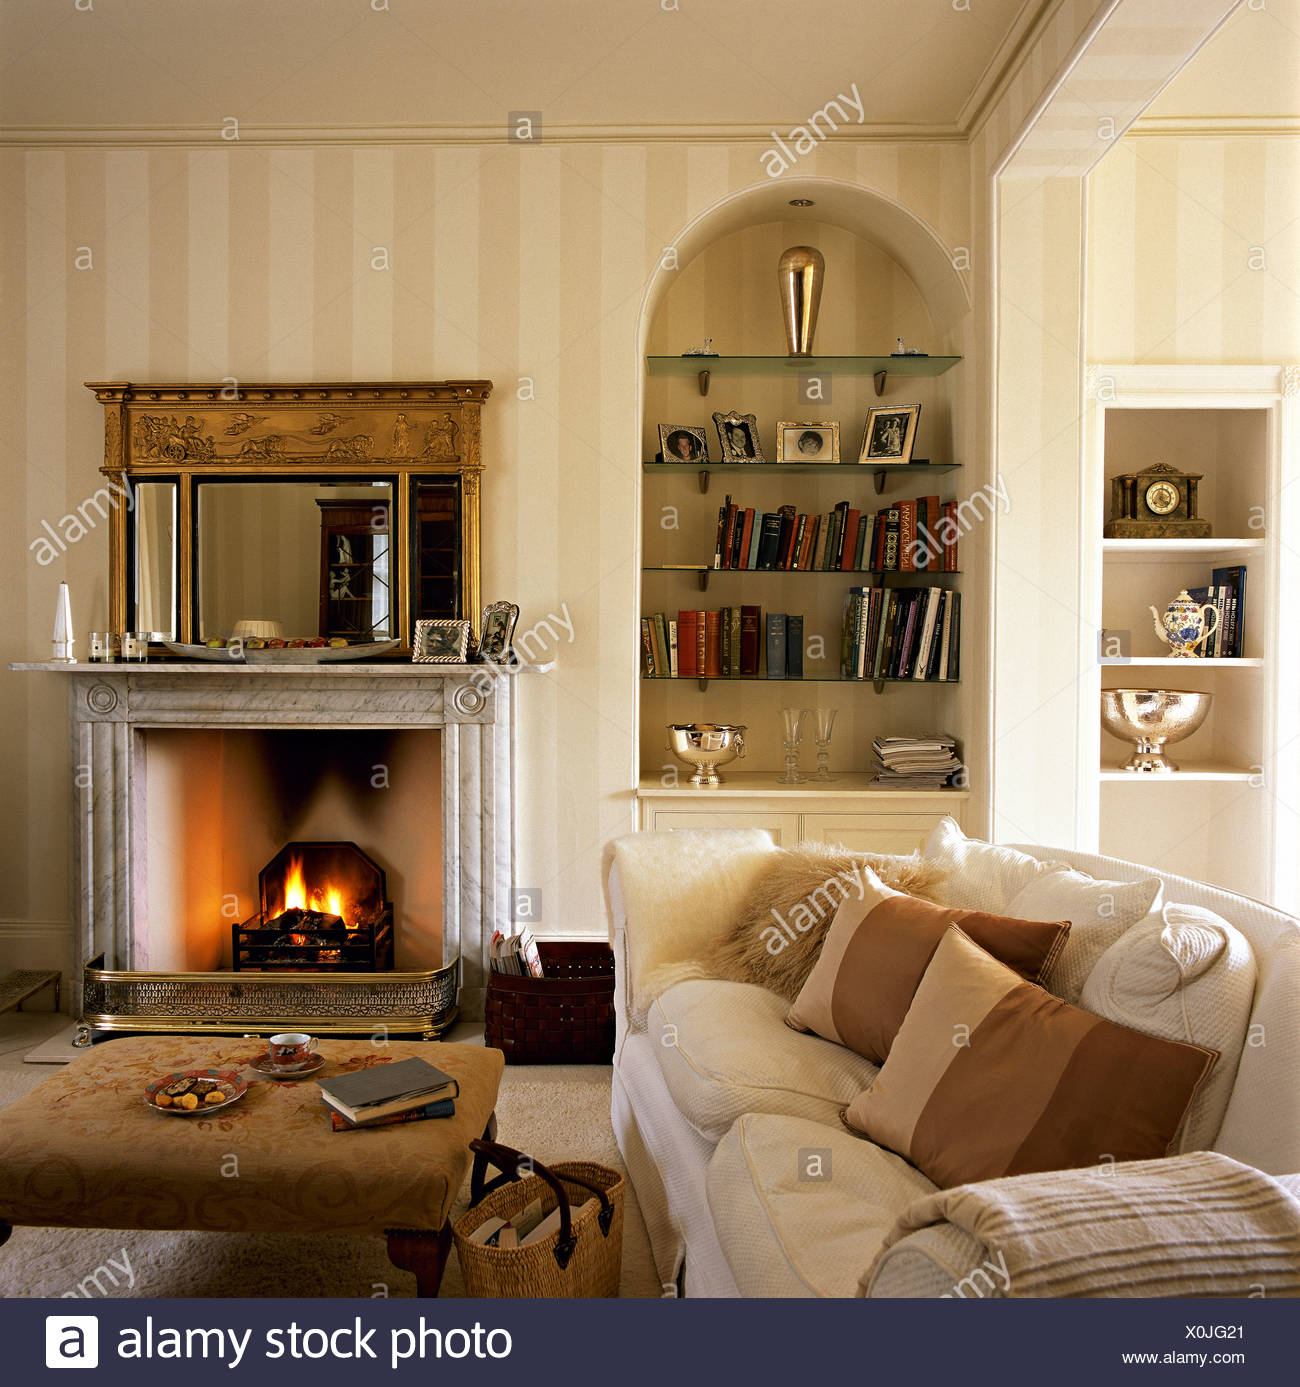 Striped Cushions On Comfortable Cream Sofa Beside Upholstered Stool In  Country Living Room With Alcove Shelves Beside Fireplace